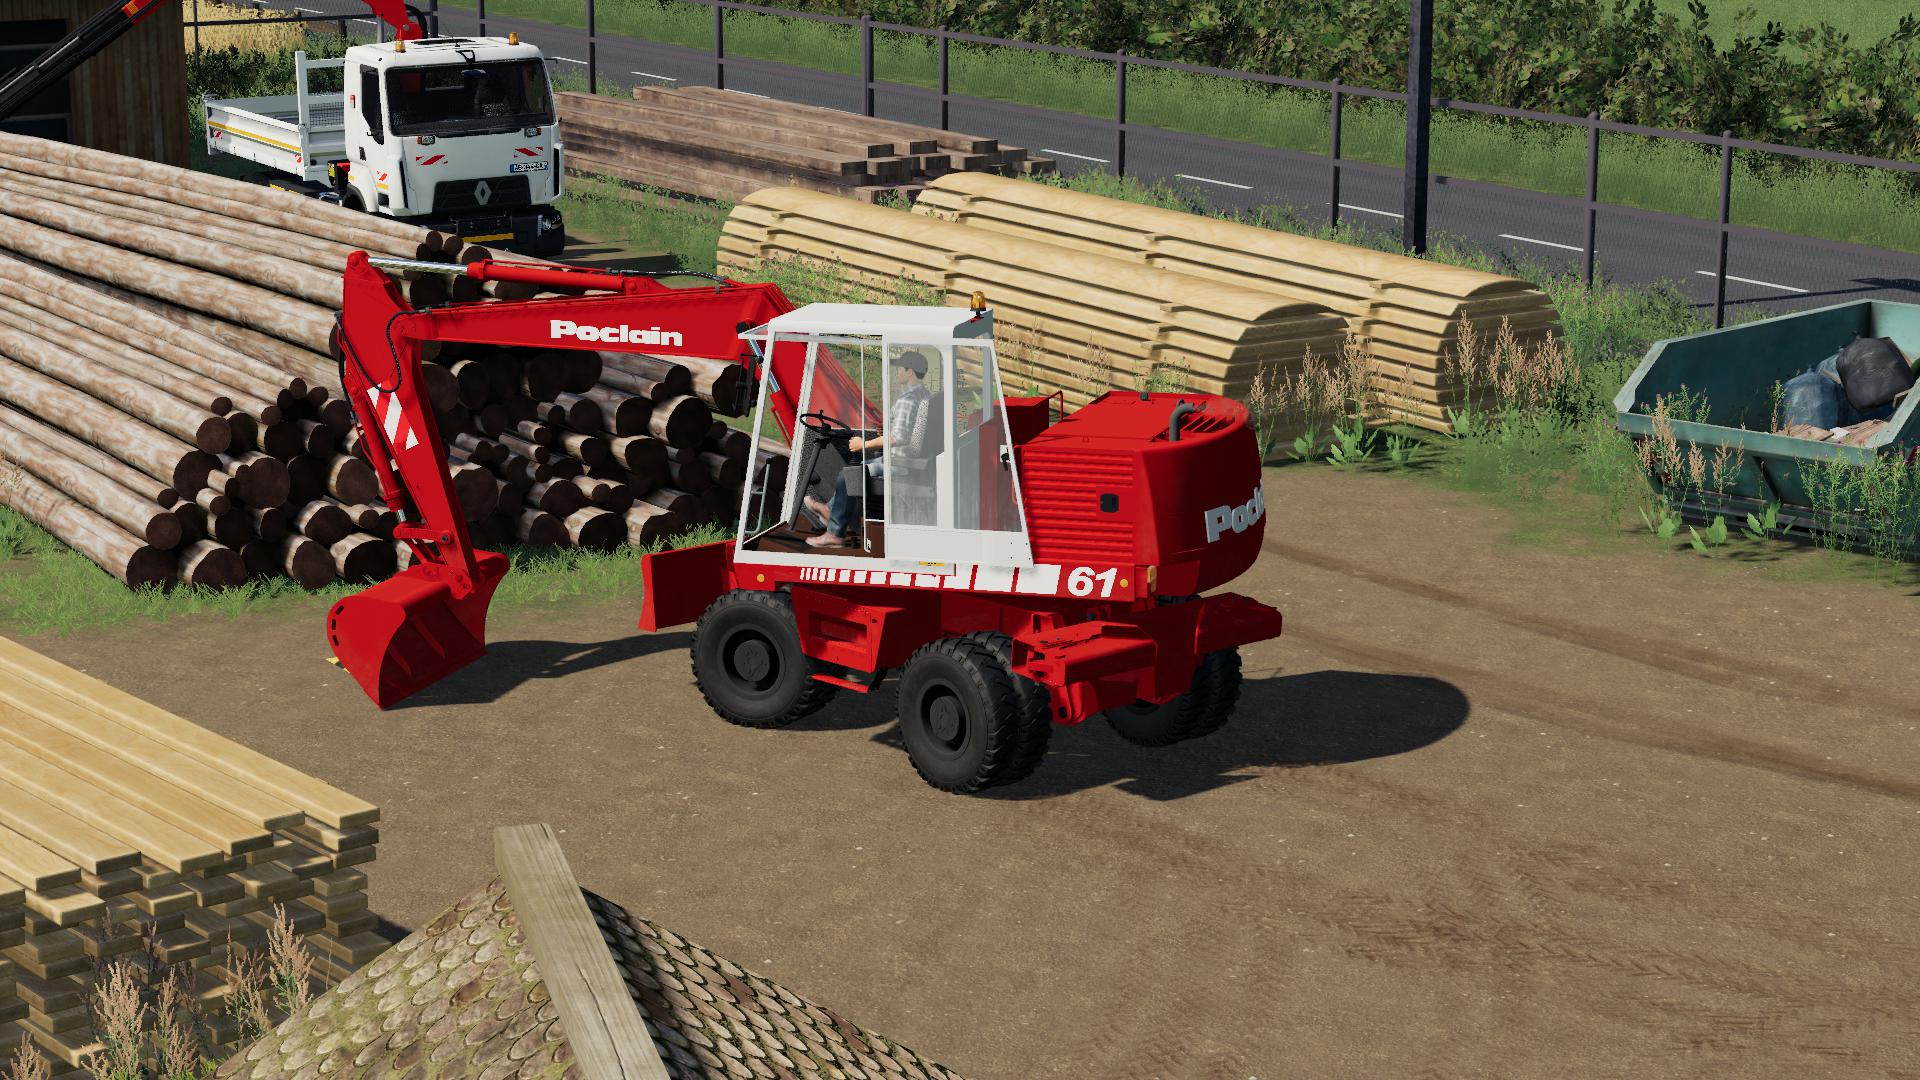 FS19 - Case 688 / Poclain 61 V1.0